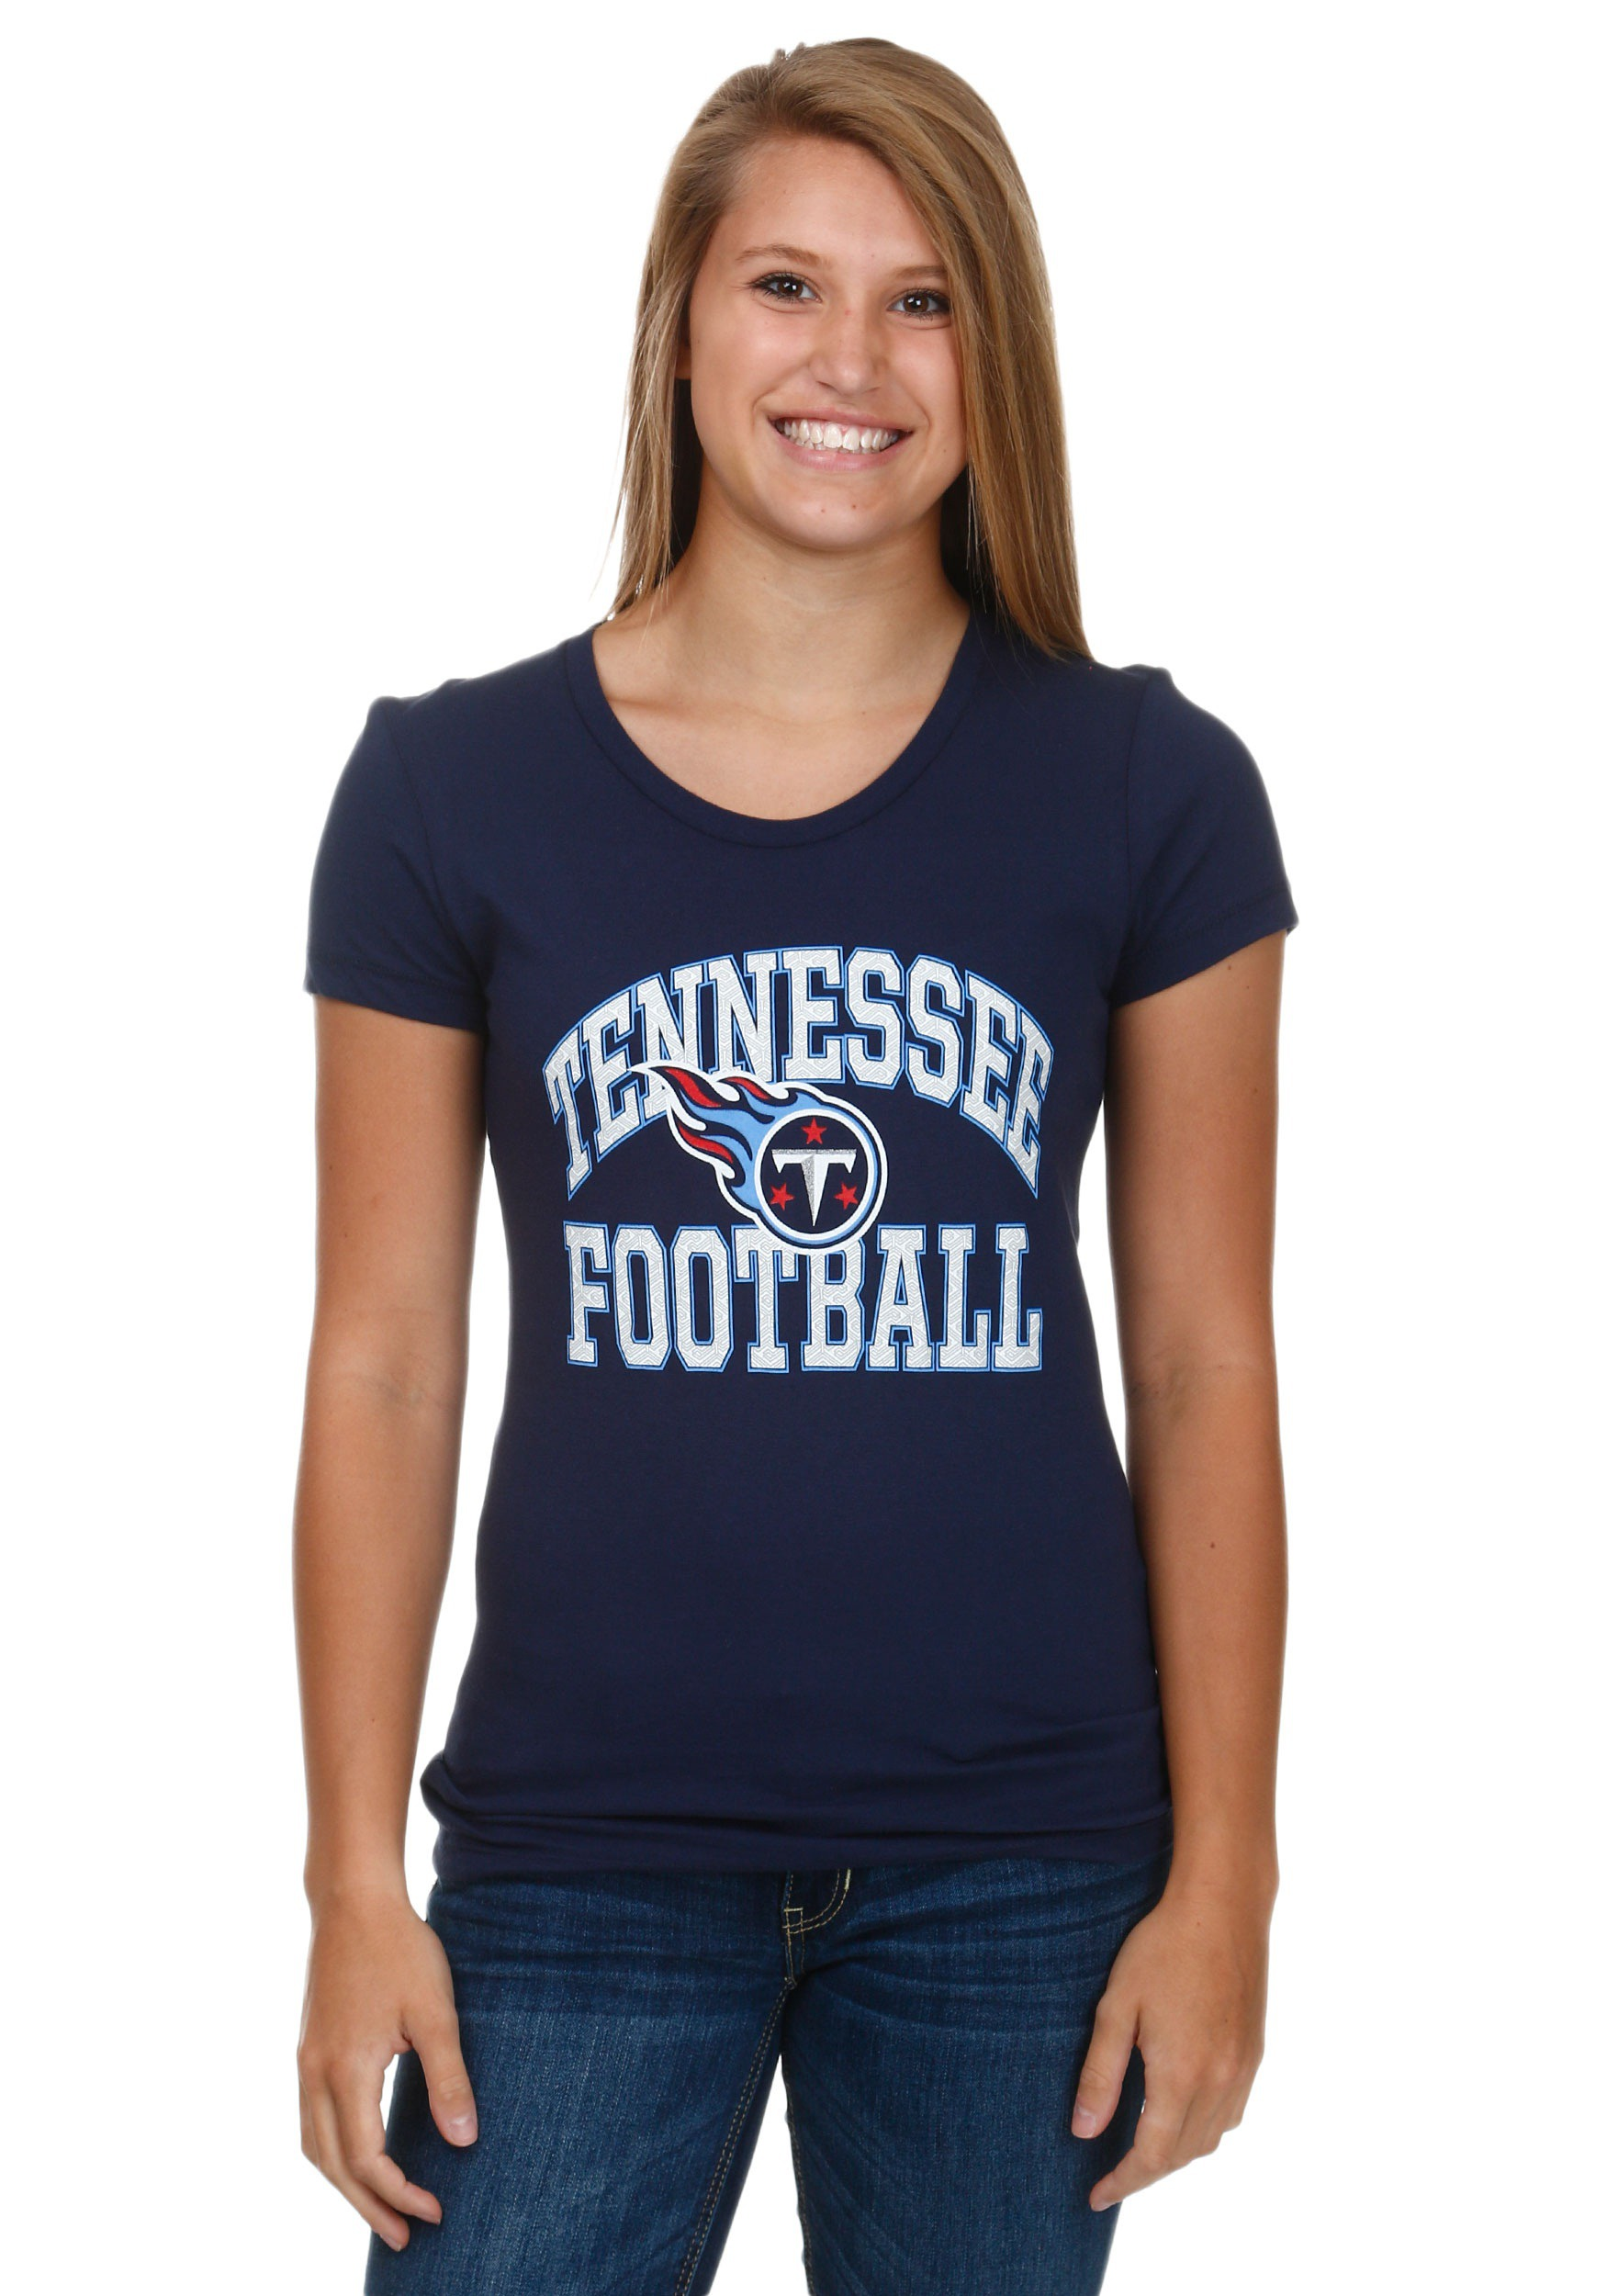 Tennessee titans franchise fit womens t shirt for T shirt printing franchise